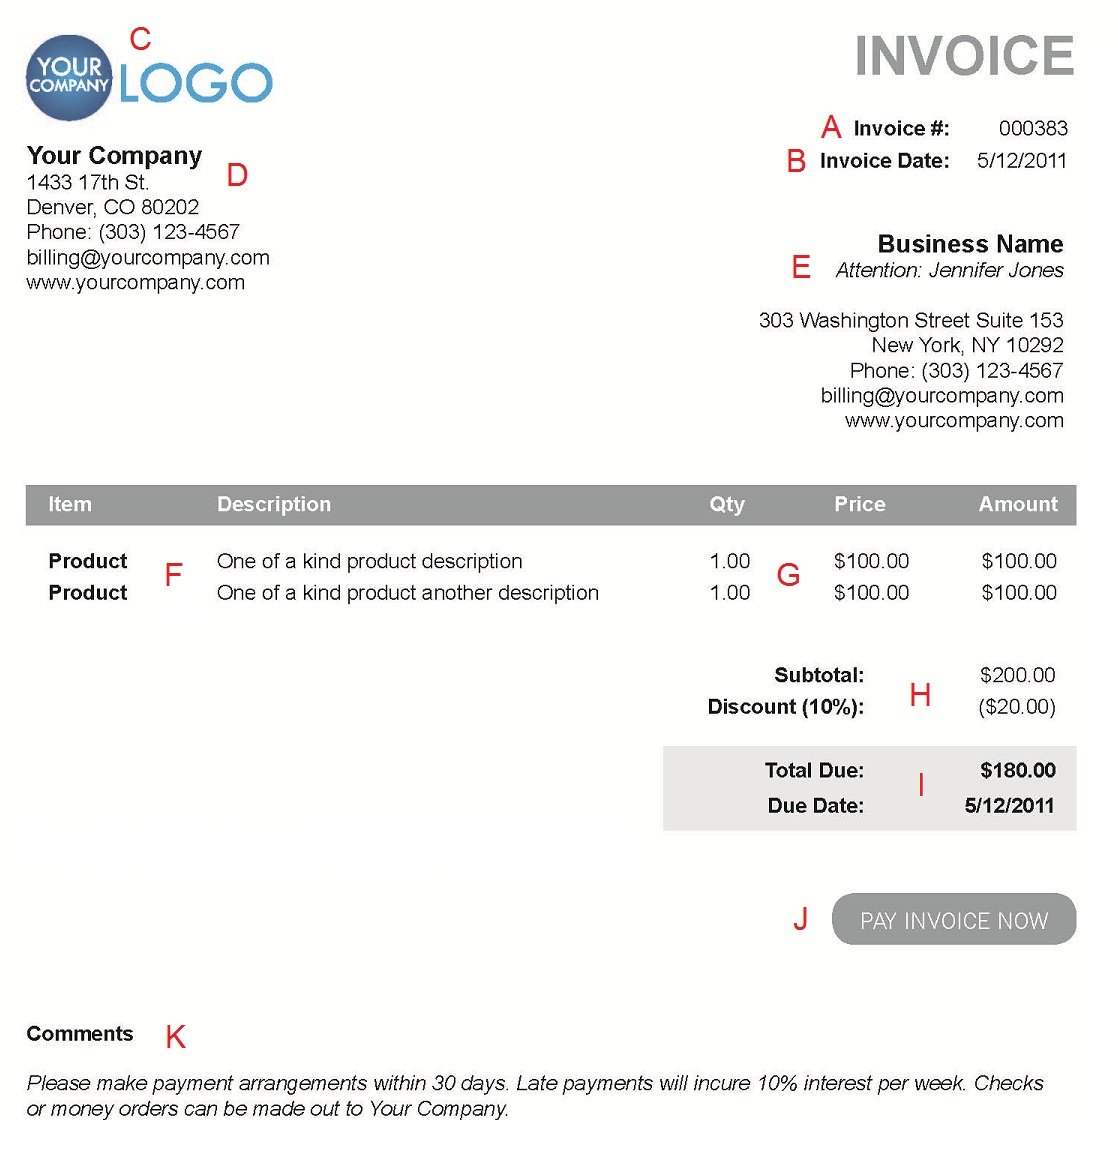 Opposenewapstandardsus  Marvellous The  Different Sections Of An Electronic Payment Invoice With Outstanding A  With Awesome Printable Free Invoices Also Pay Invoice With Credit Card In Addition Car Rental Invoice Template And Invoice Paper Perforated As Well As Invoice For Service Additionally How To Make A Fake Invoice From Paysimplecom With Opposenewapstandardsus  Outstanding The  Different Sections Of An Electronic Payment Invoice With Awesome A  And Marvellous Printable Free Invoices Also Pay Invoice With Credit Card In Addition Car Rental Invoice Template From Paysimplecom